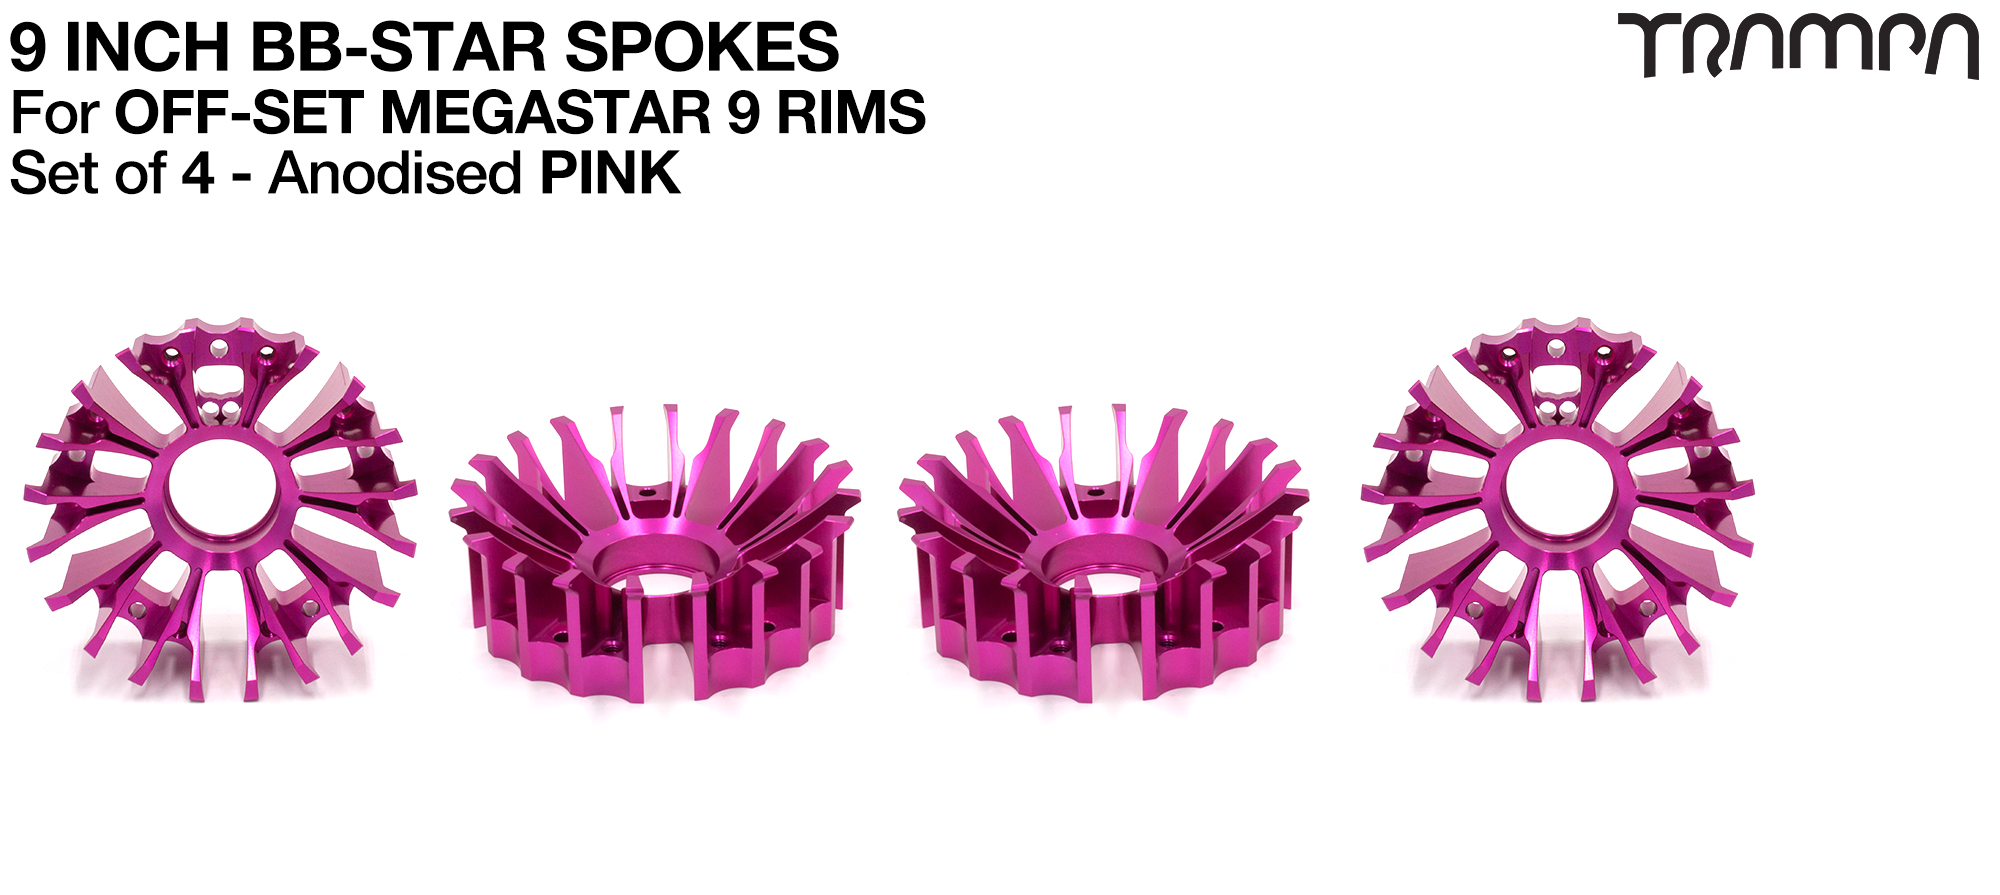 BBStar Spoke for SUPERSTAR or any size MEGASTAR rims - Extruded T6 Aluminium Heat treated & CNC Precision milled -  PINK